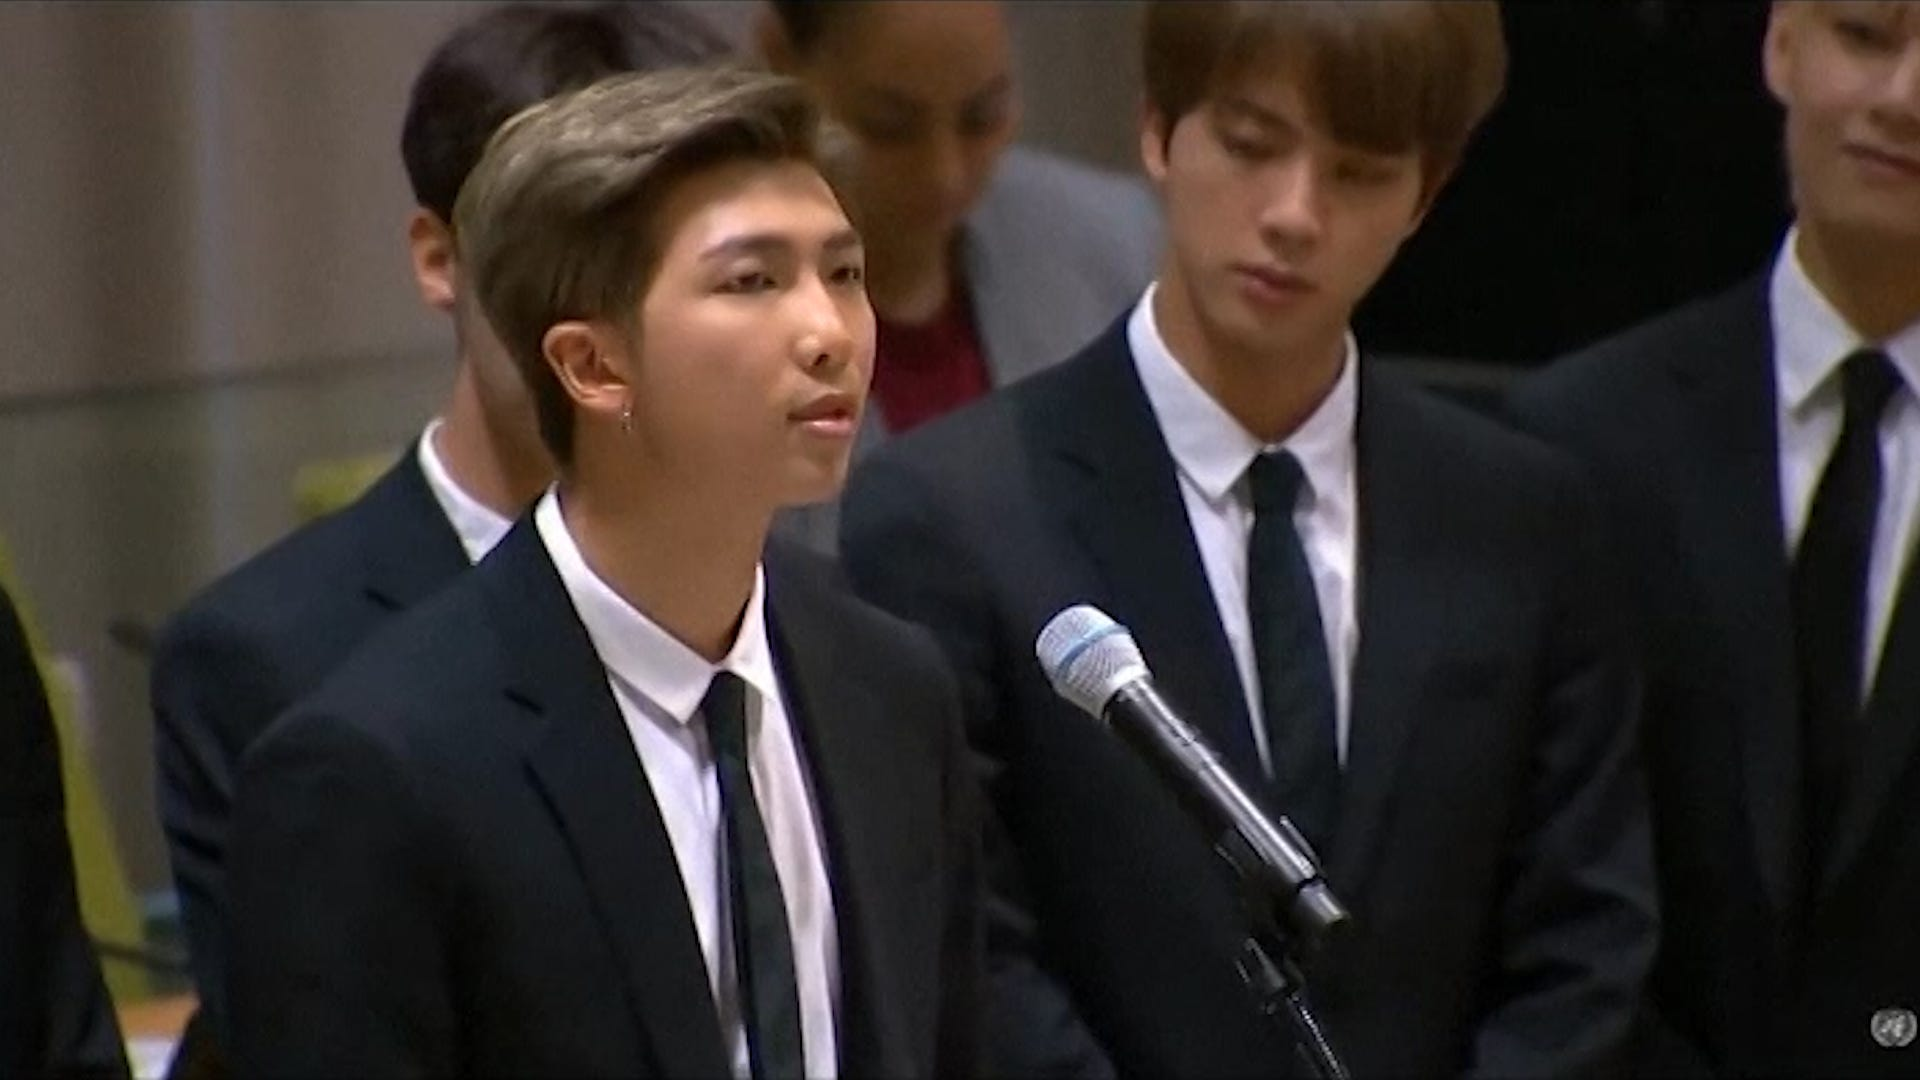 K-Pop member delivers emotional speech to United Nations